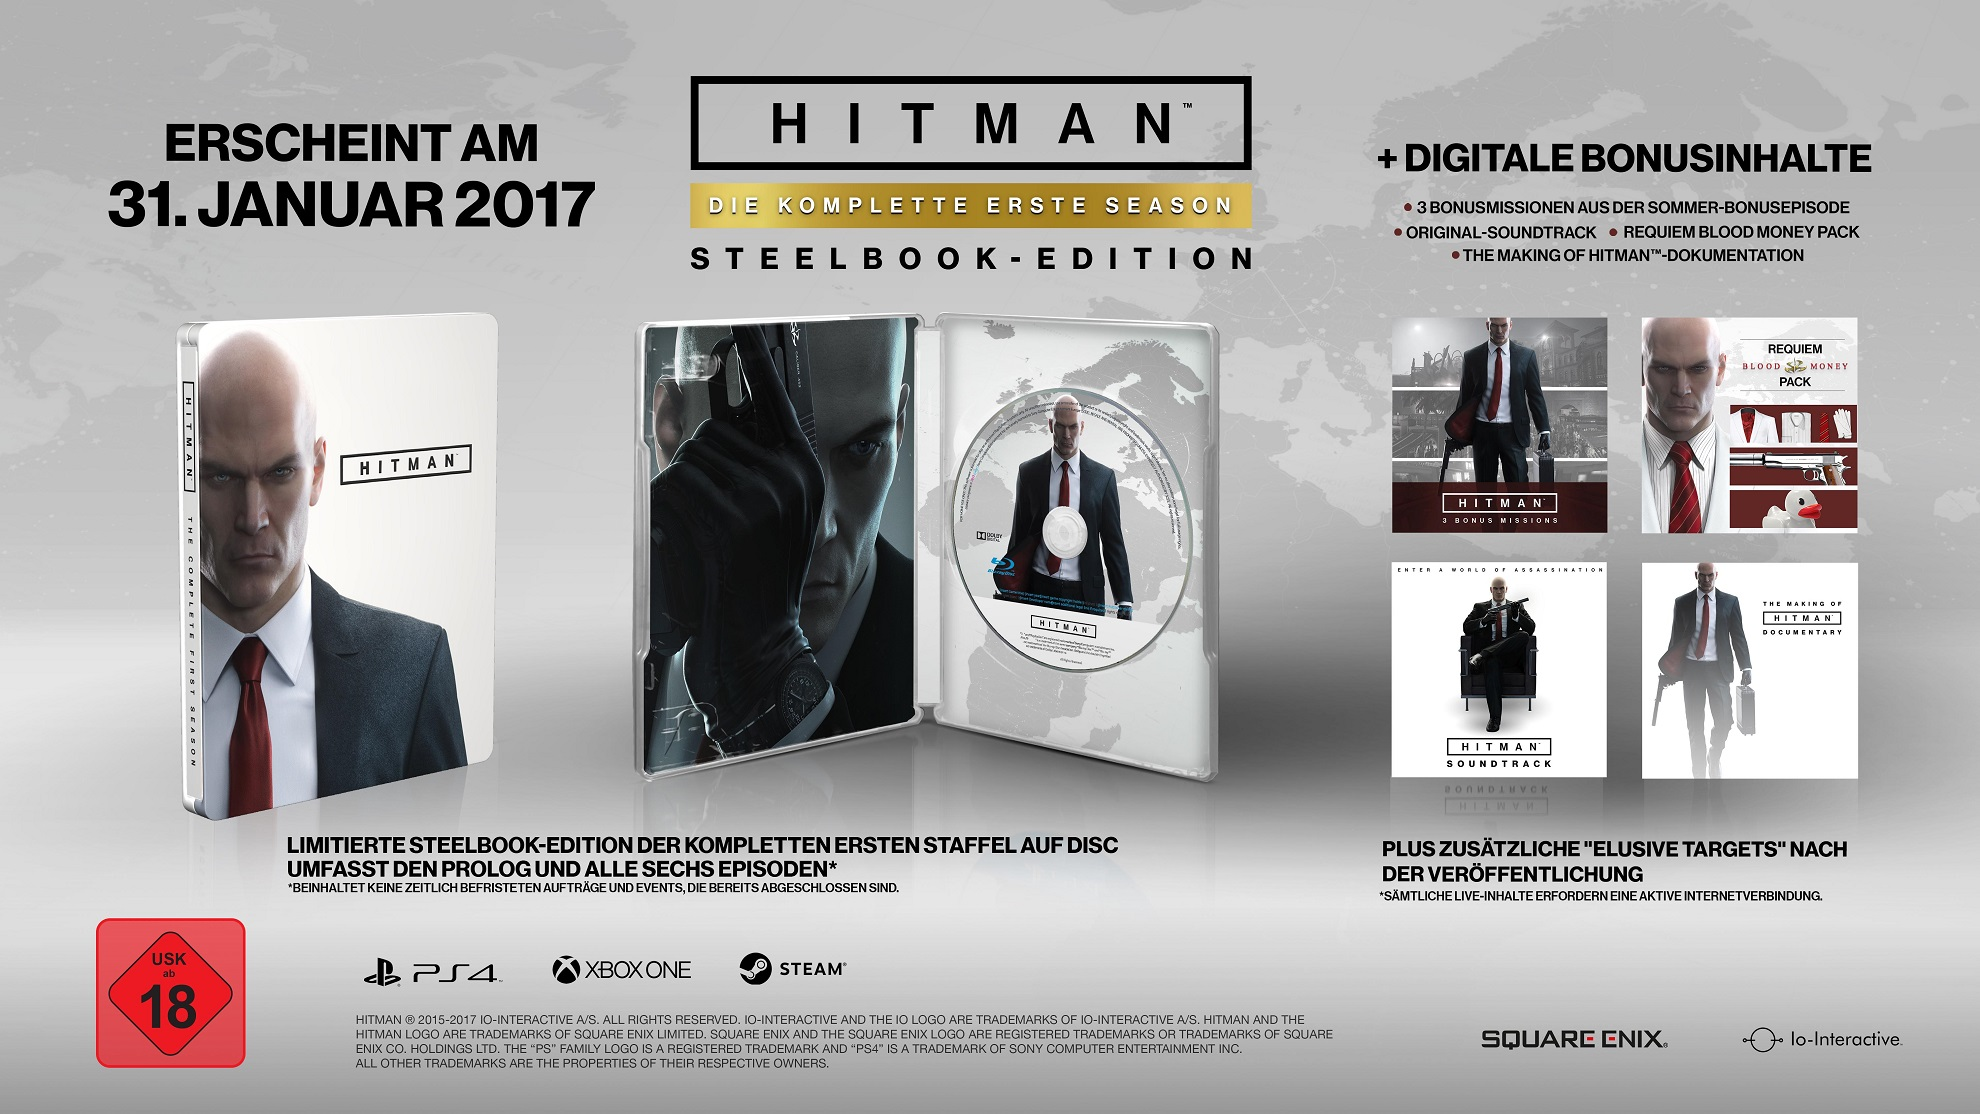 hitman retail season 1